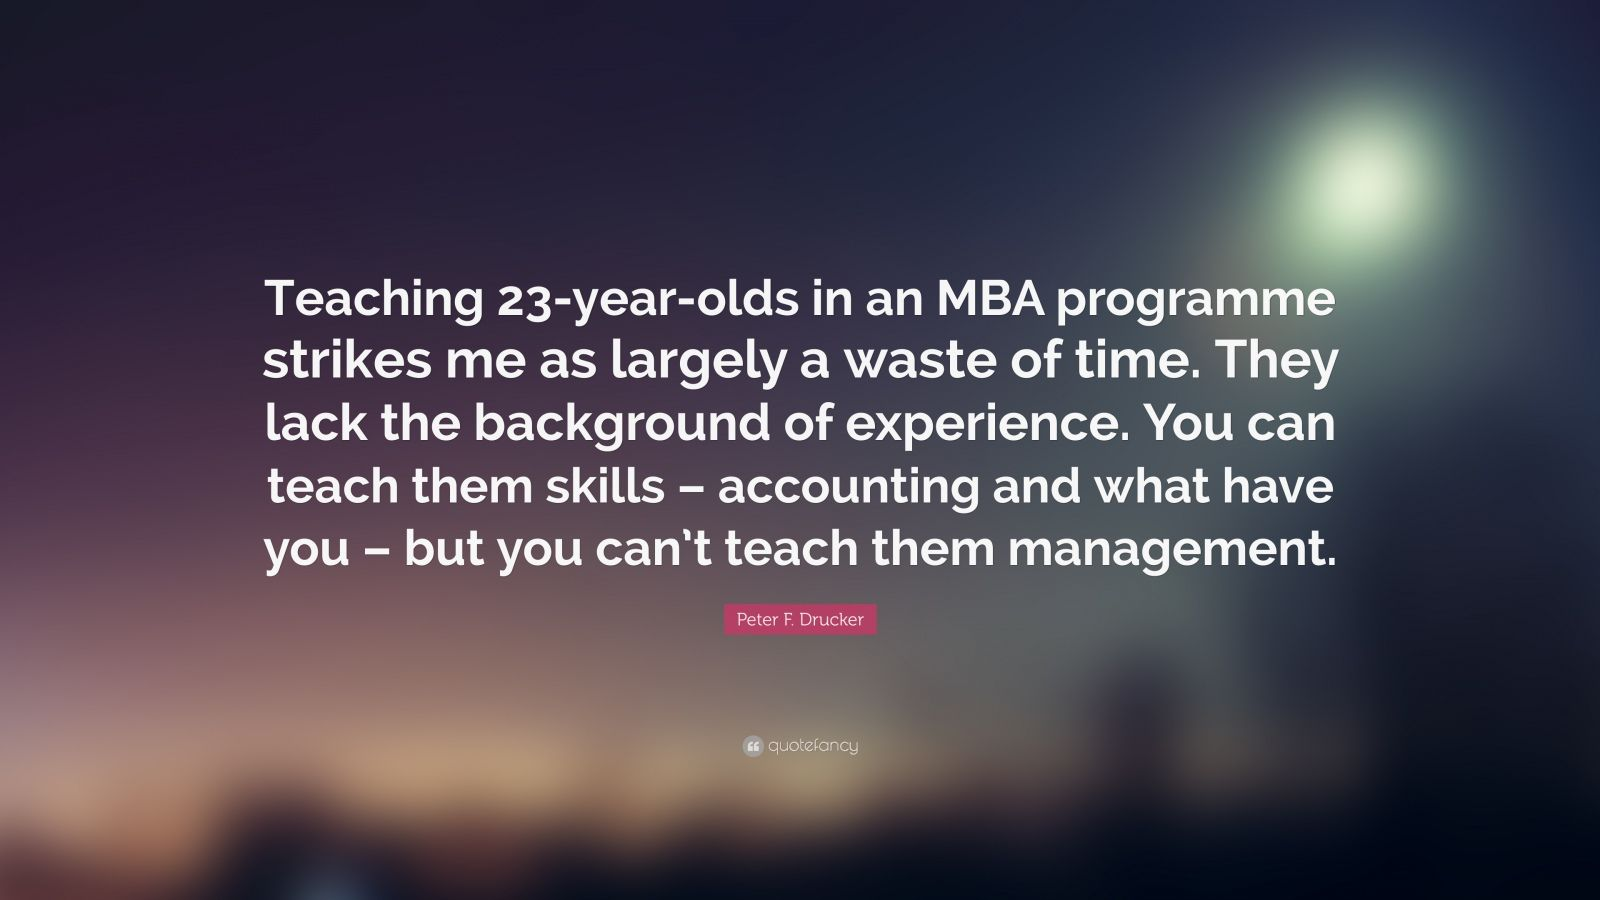 "Peter F. Drucker Quote: ""Teaching 23-year-olds in an MBA programme strikes me as largely a waste of time. They lack the background of experience. You can teach them skills – accounting and what have you – but you can't teach them management."""